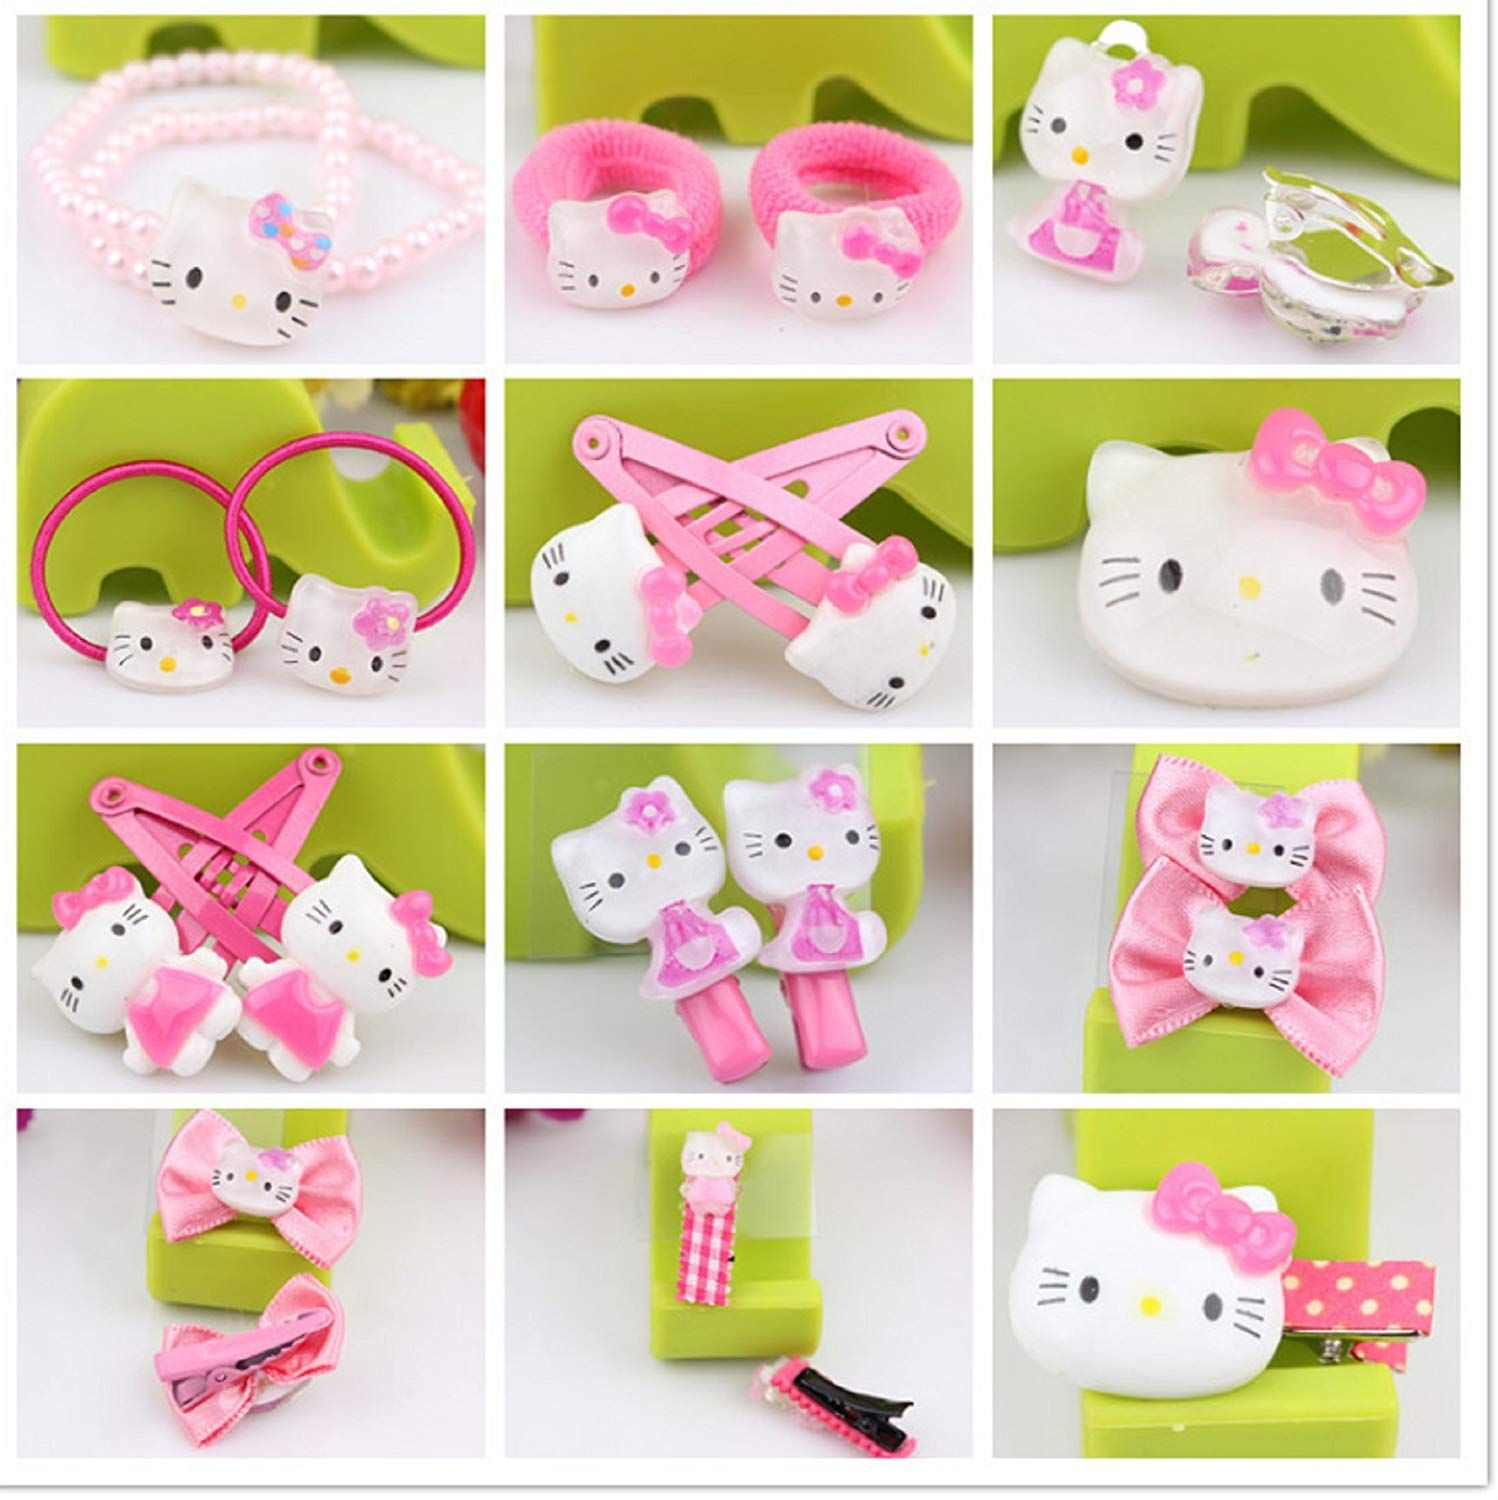 dc15903de Amazon.com : NiceGo Pink Hair Bows Clips for Girls - Hello Kitty Ribbon  Boutique